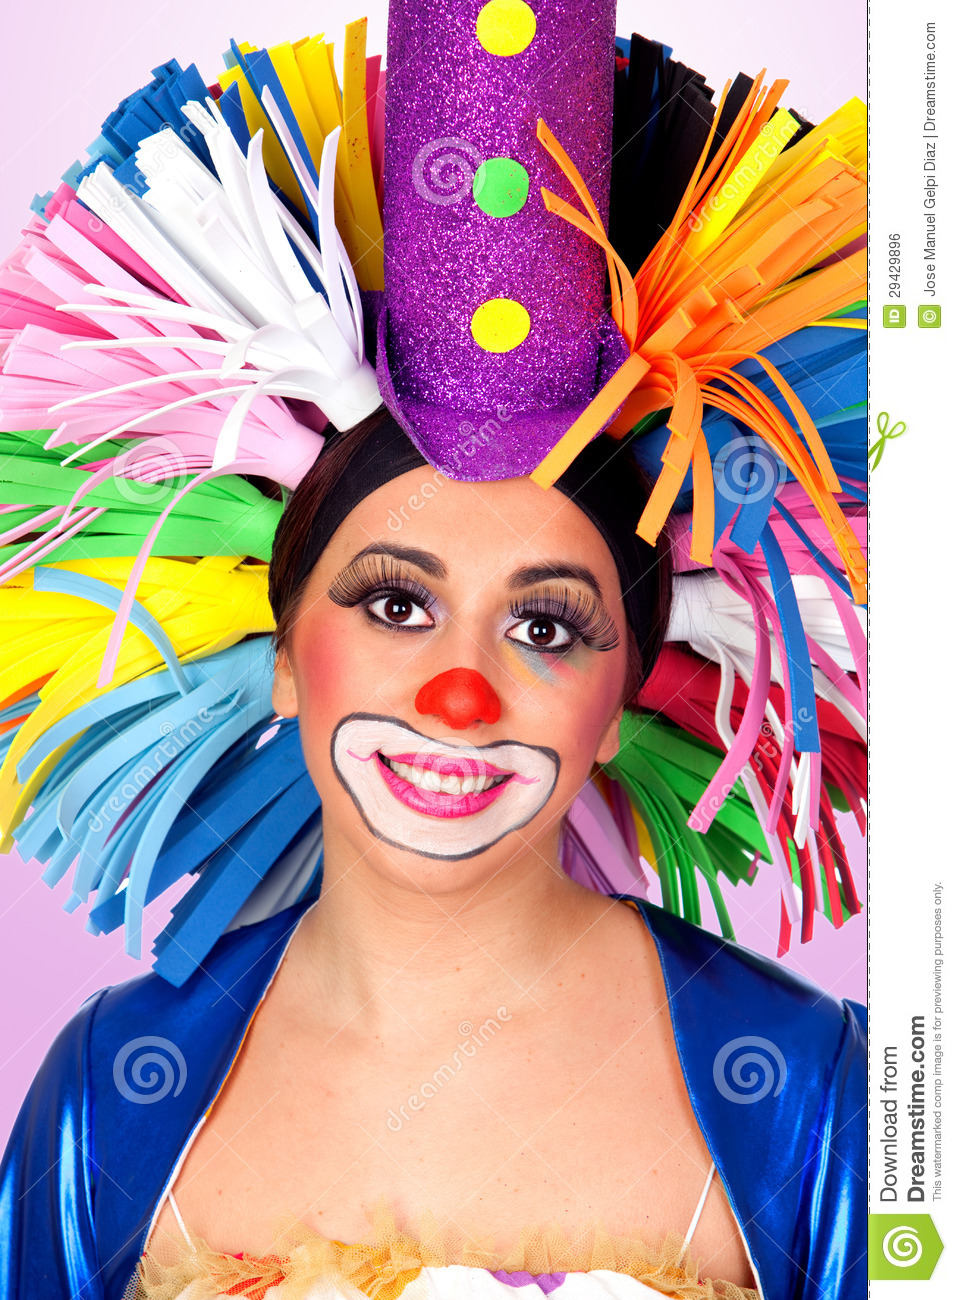 clown drle de fille avec une grande perruque colore - Perruque Colore